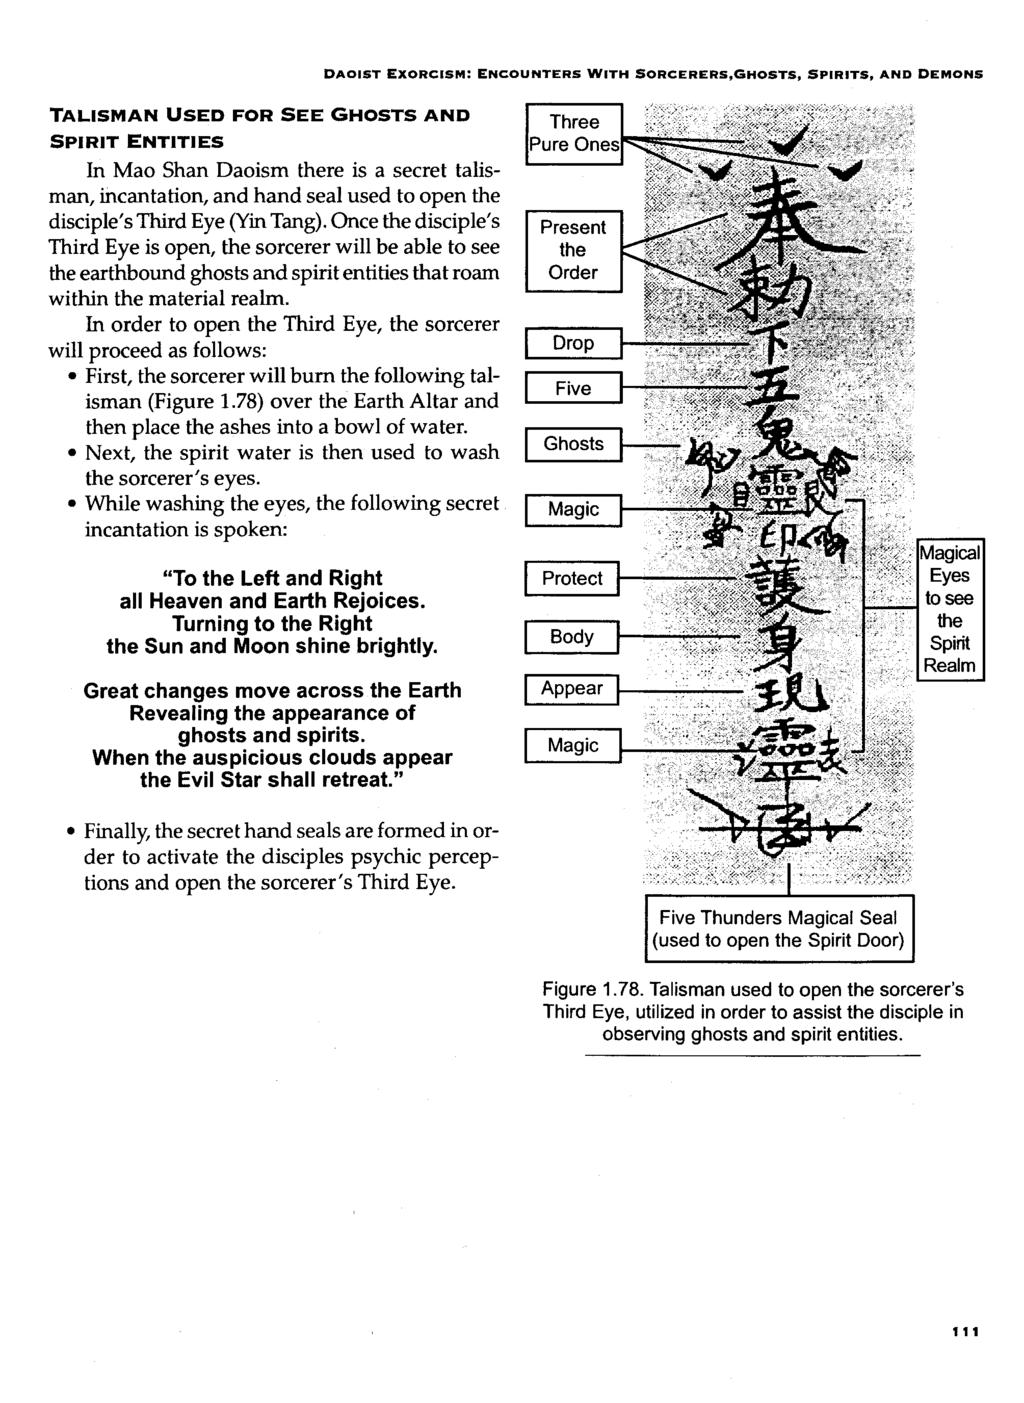 DAOIST EXORCISM: ENCOUNTERS WITH SORCERERS,GHOSTS, SPIRITS, AND DEMONS TALISMAN USED FOR SEE GHOSTS AND SPIRIT ENTITIES In Mao Shan Daoism there is a secret talisman, incantation, and hand seal used